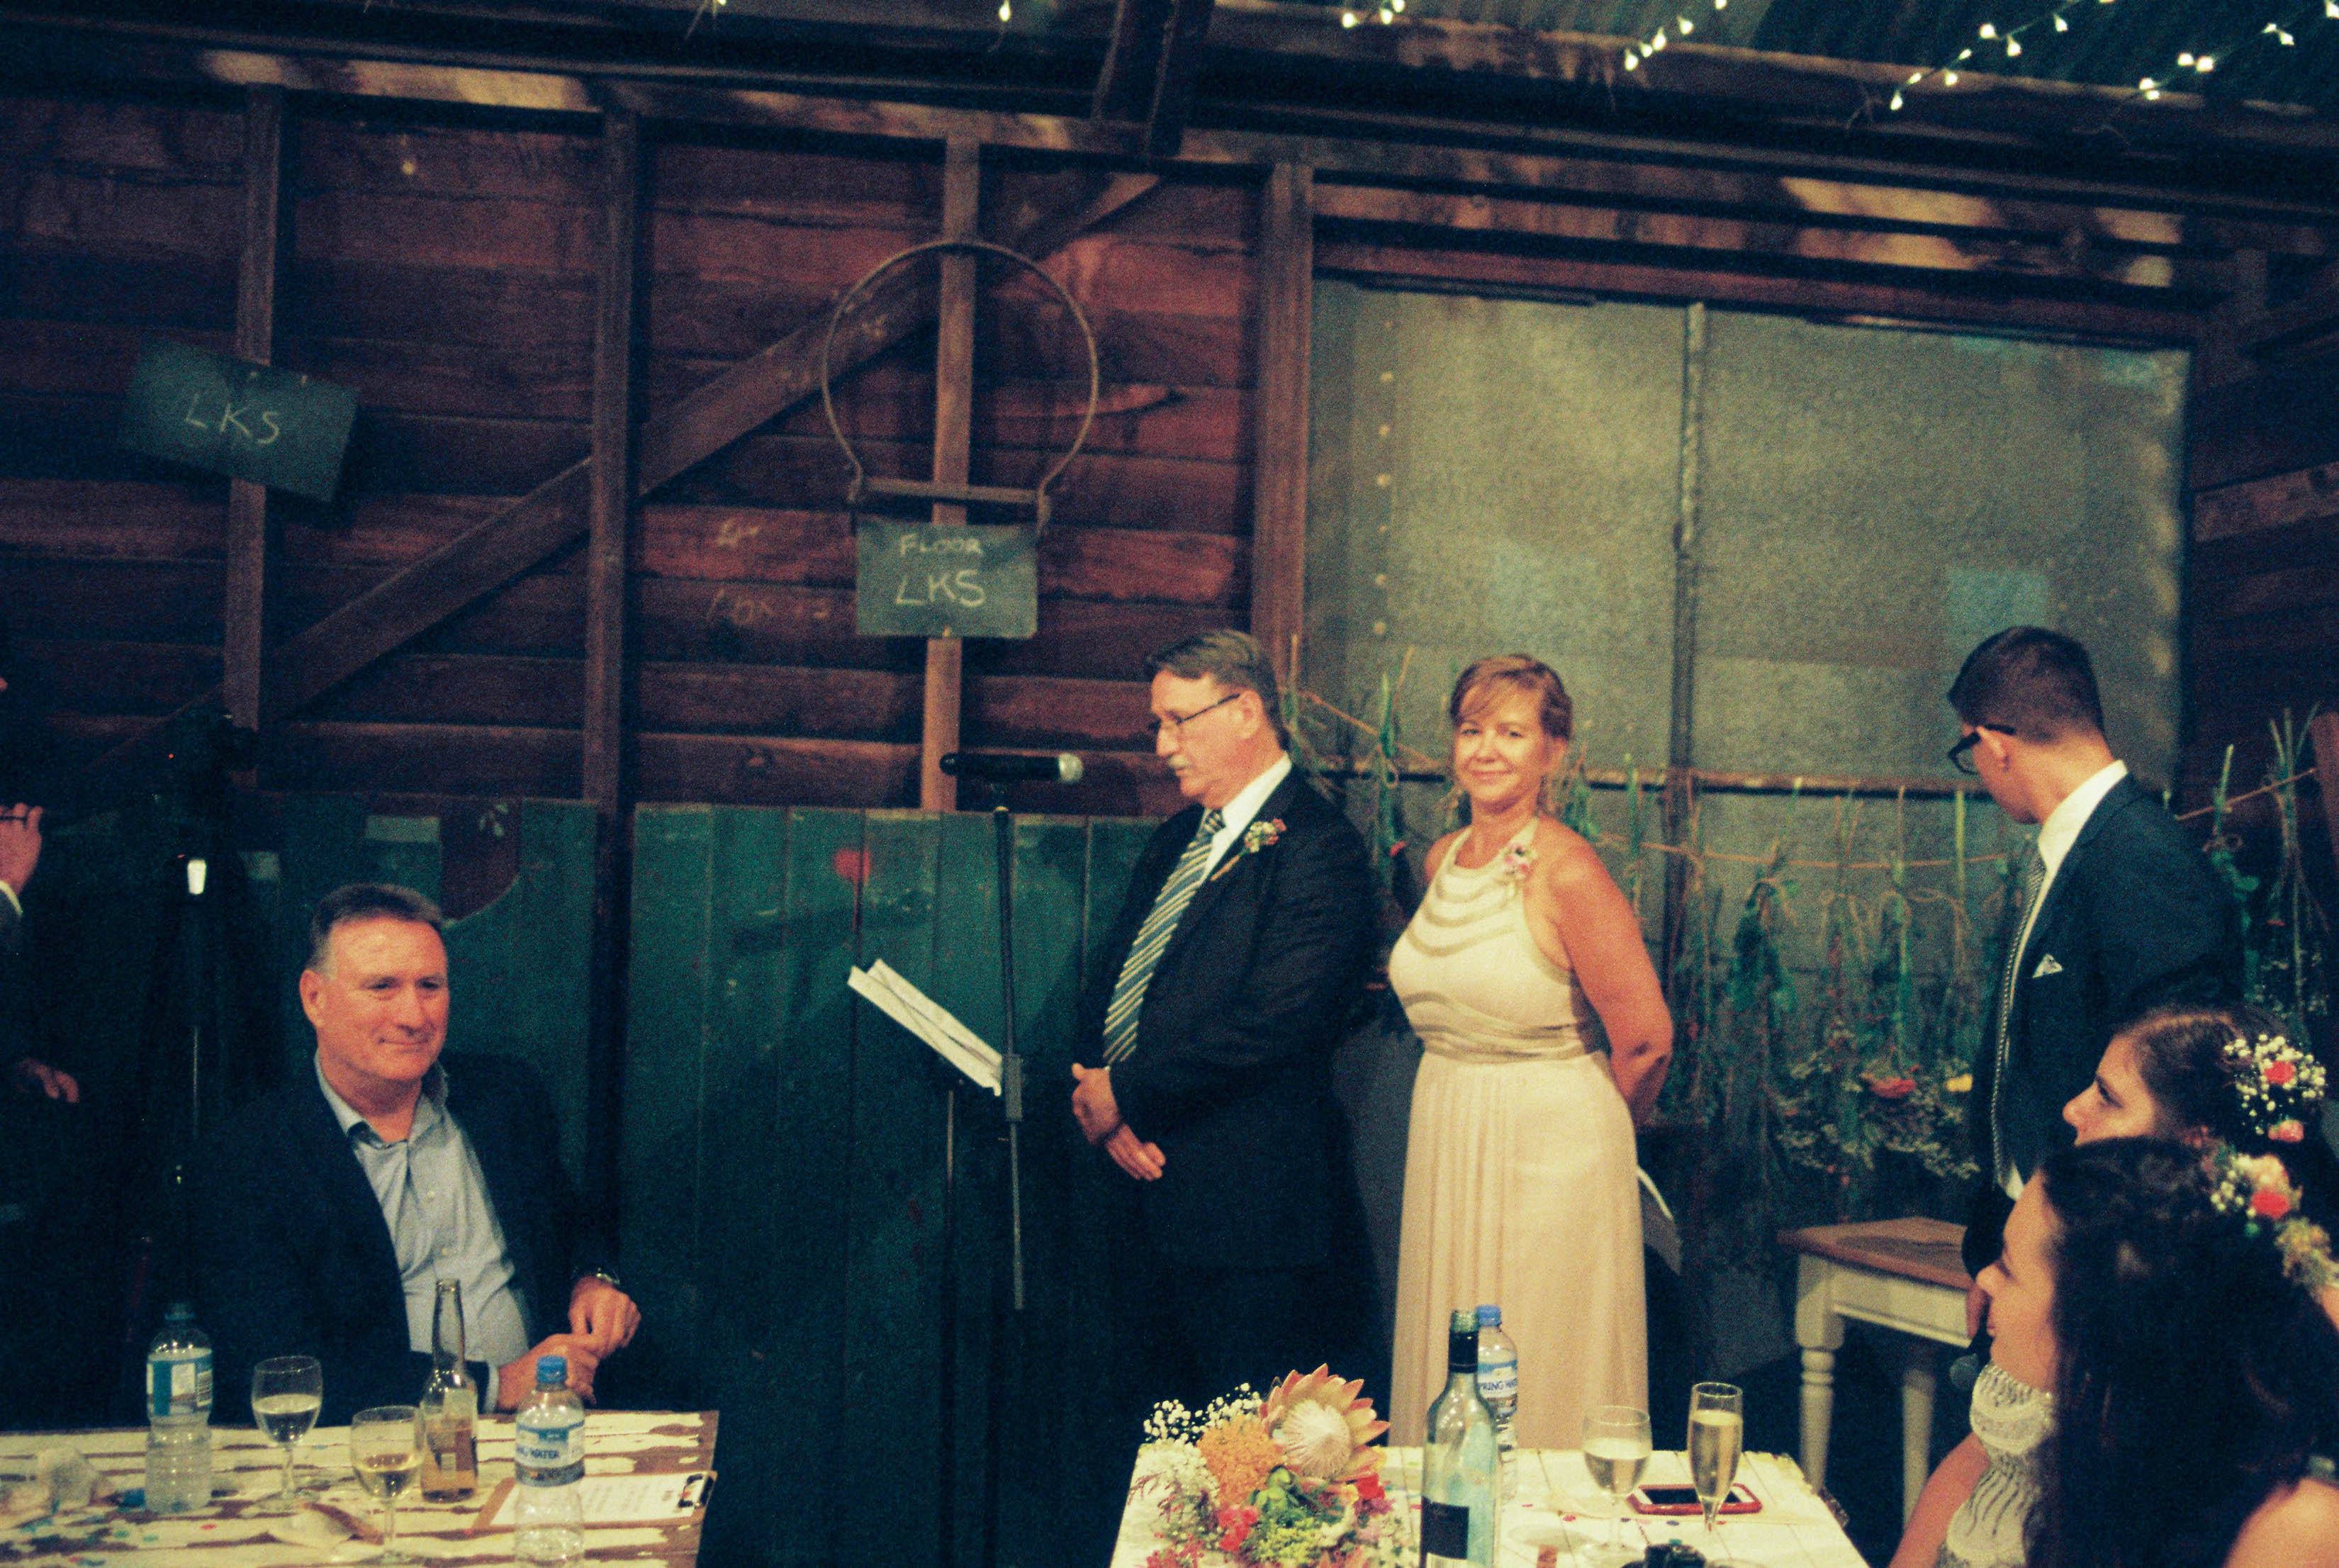 Documentary Wedding Photography of the Bride's Parents during their speech